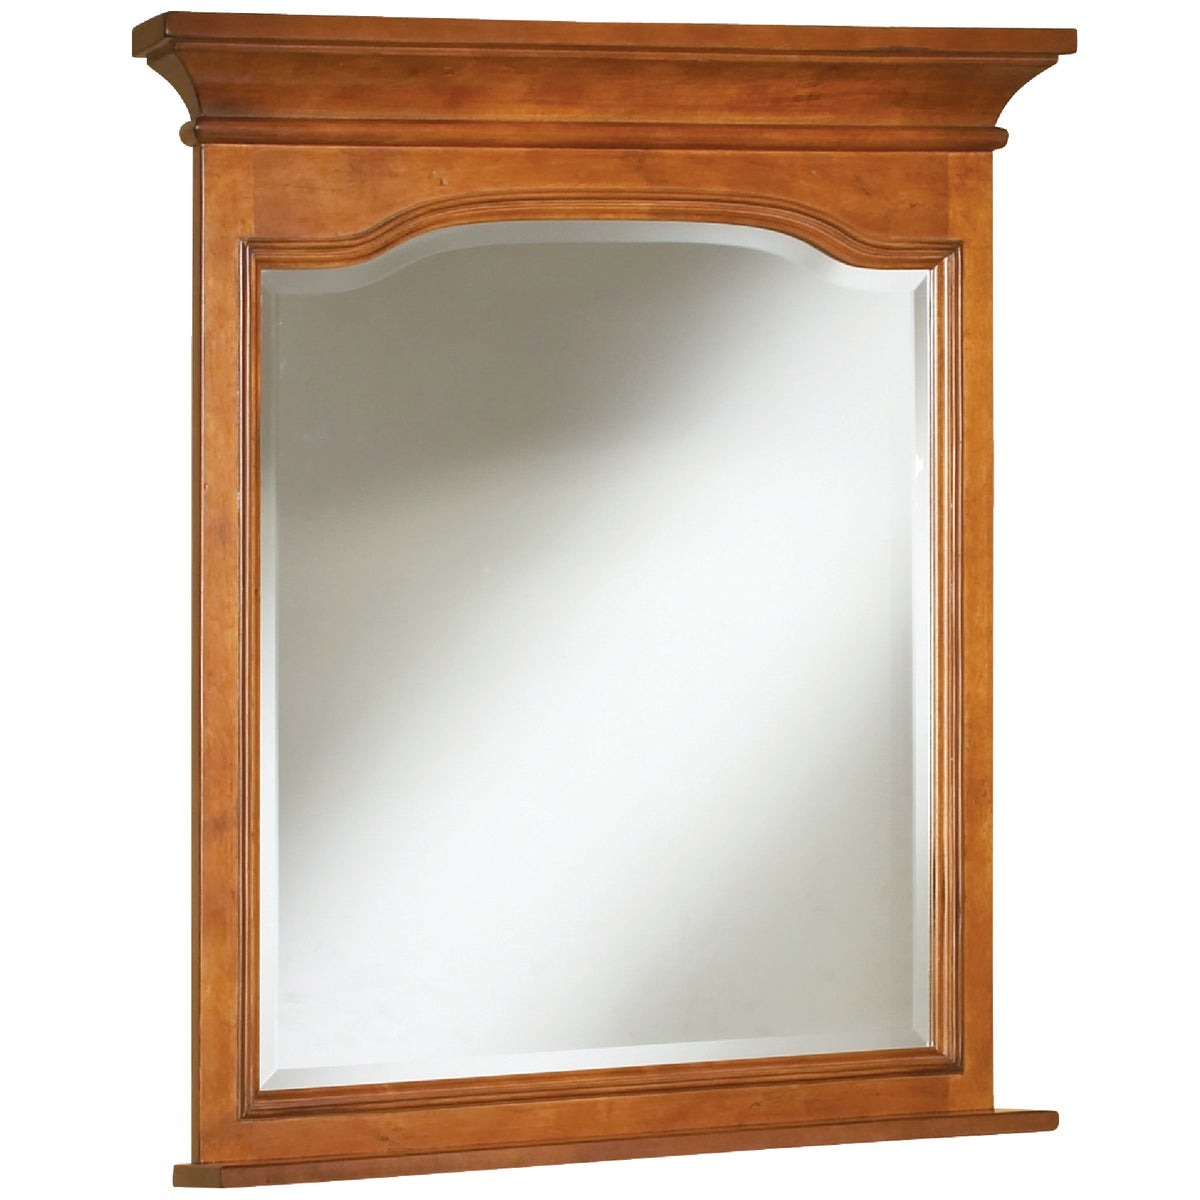 36X38 CAMBRIAN MIRROR - CB3638MR by Sunnywood Products